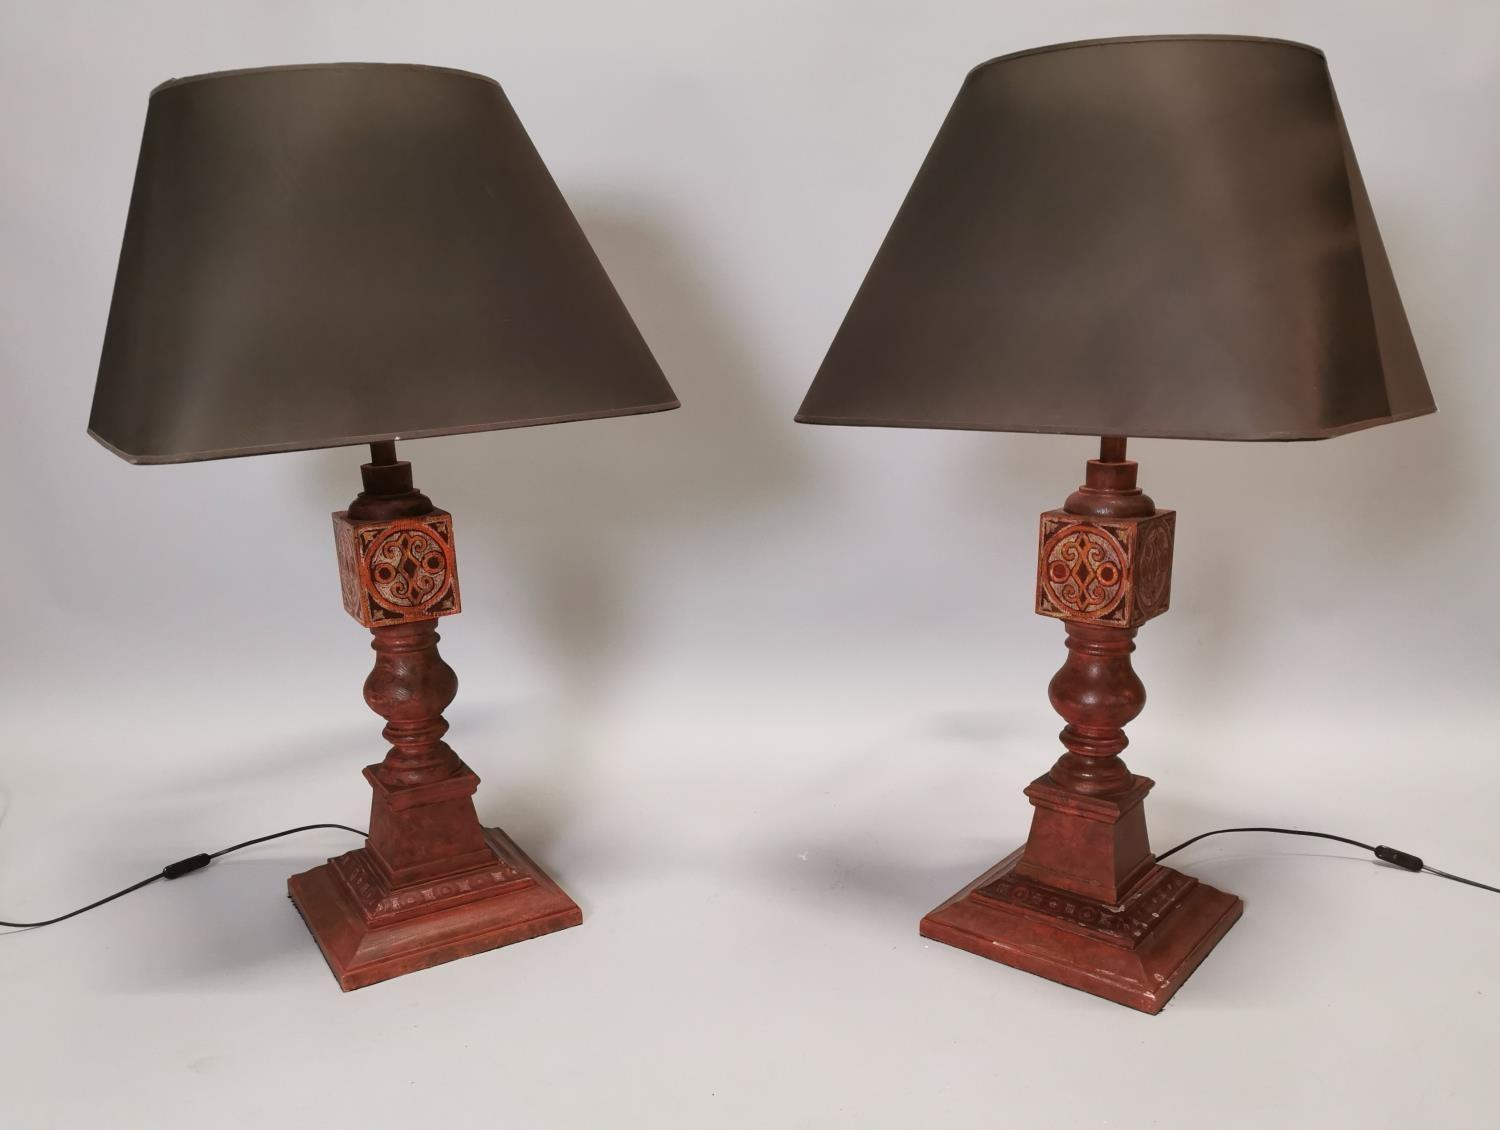 Pair of hand painted pine table lamps - Image 2 of 6